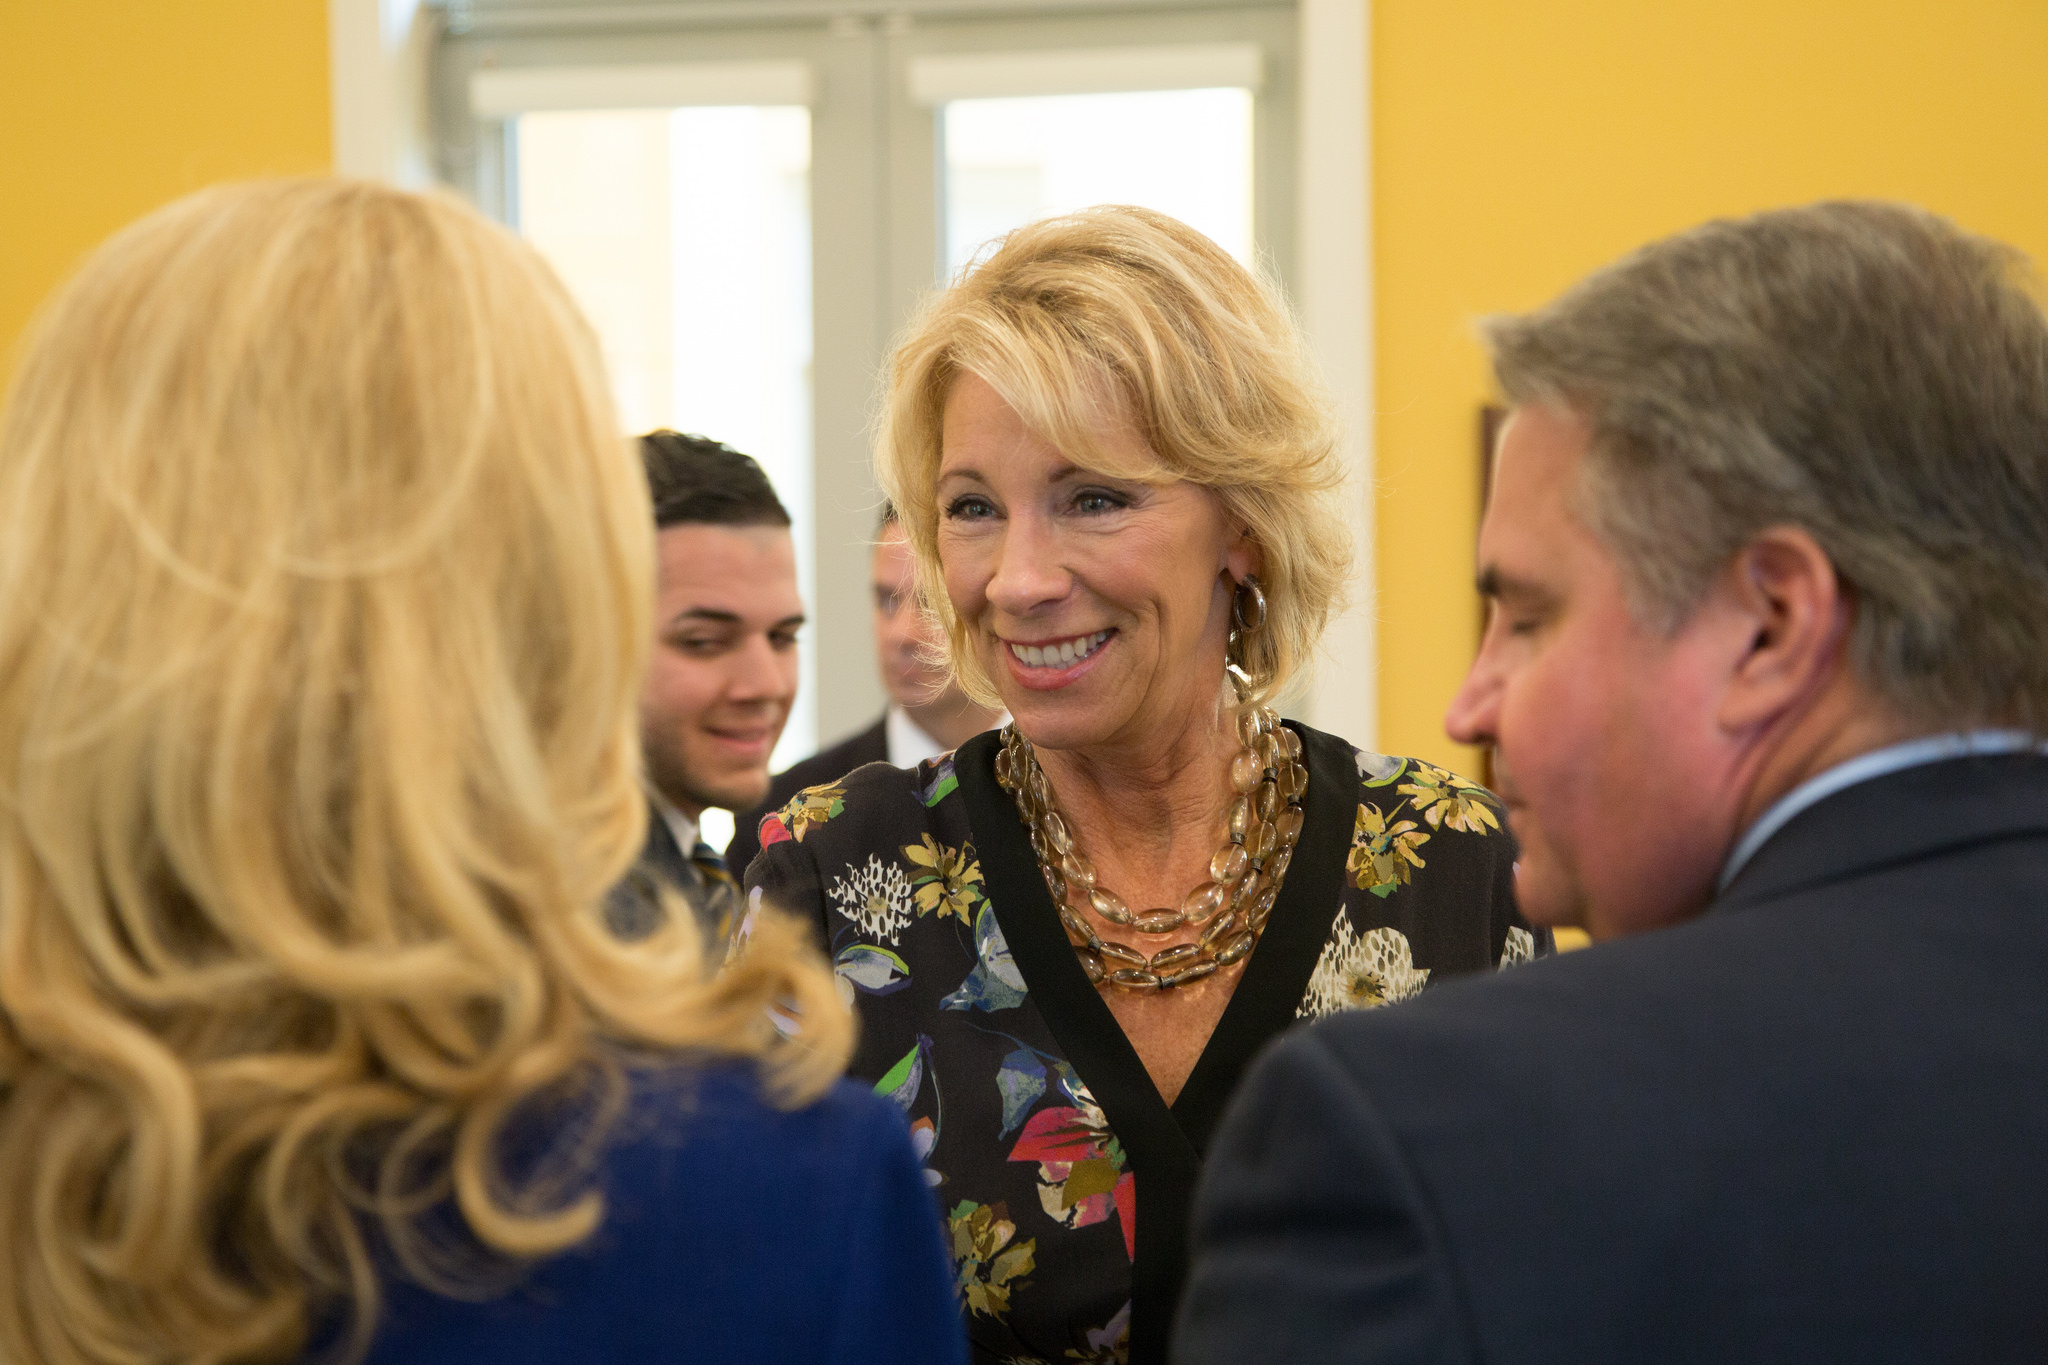 Betsy DeVos meets with students, faculty during FIU visit